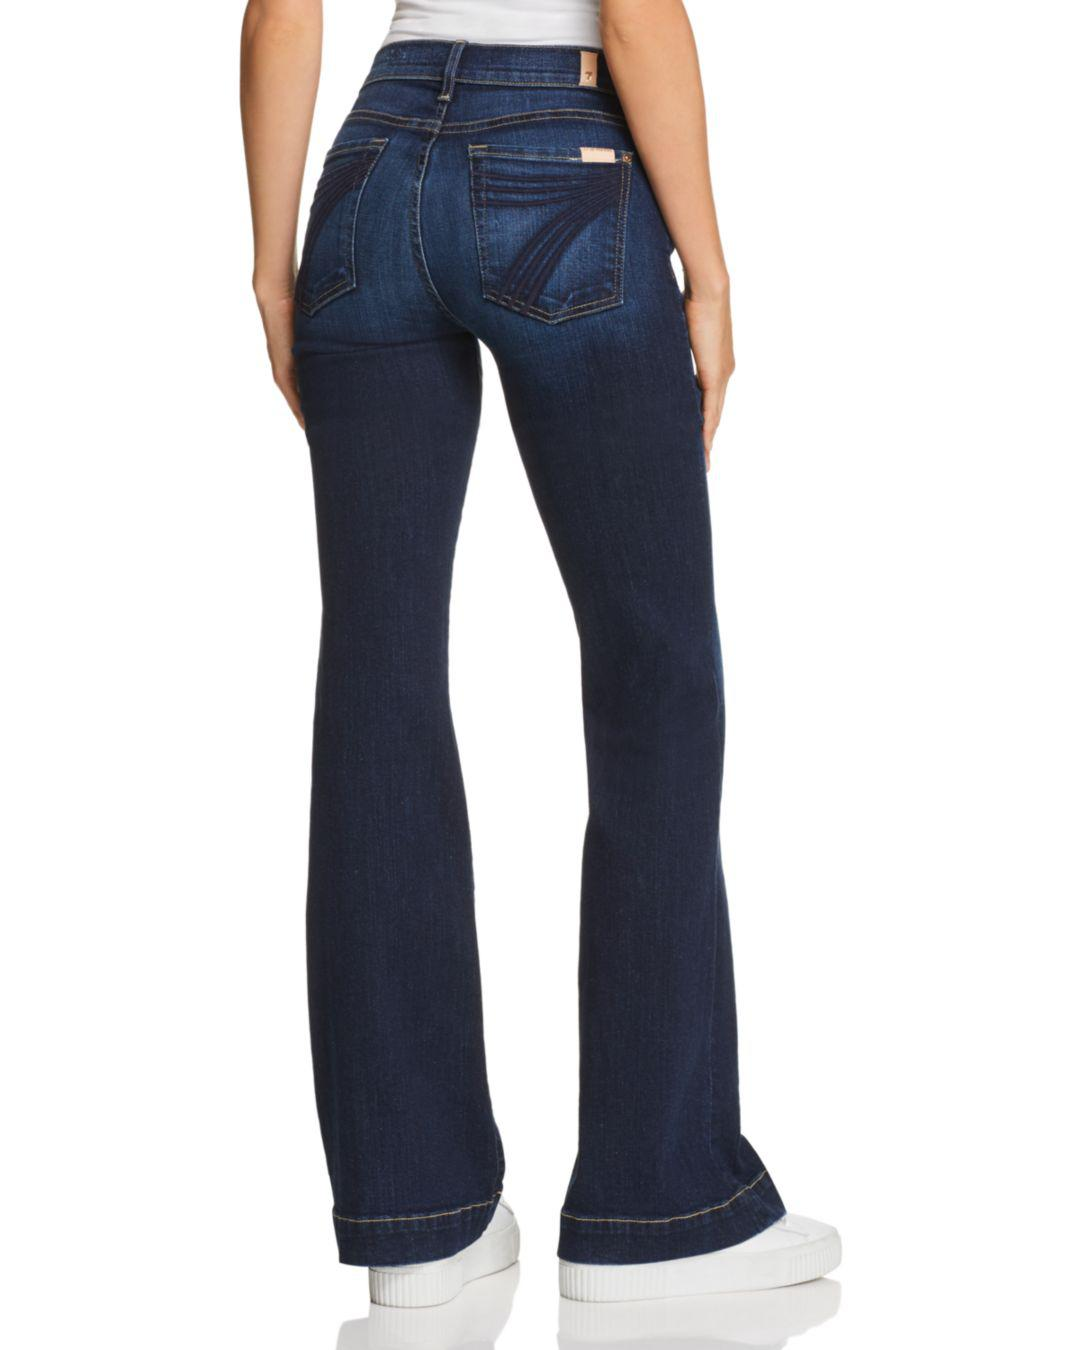 8aa2d0cb37 7 For All Mankind Dojo Flared Jeans In B(air) Authentic Fate in Blue - Lyst